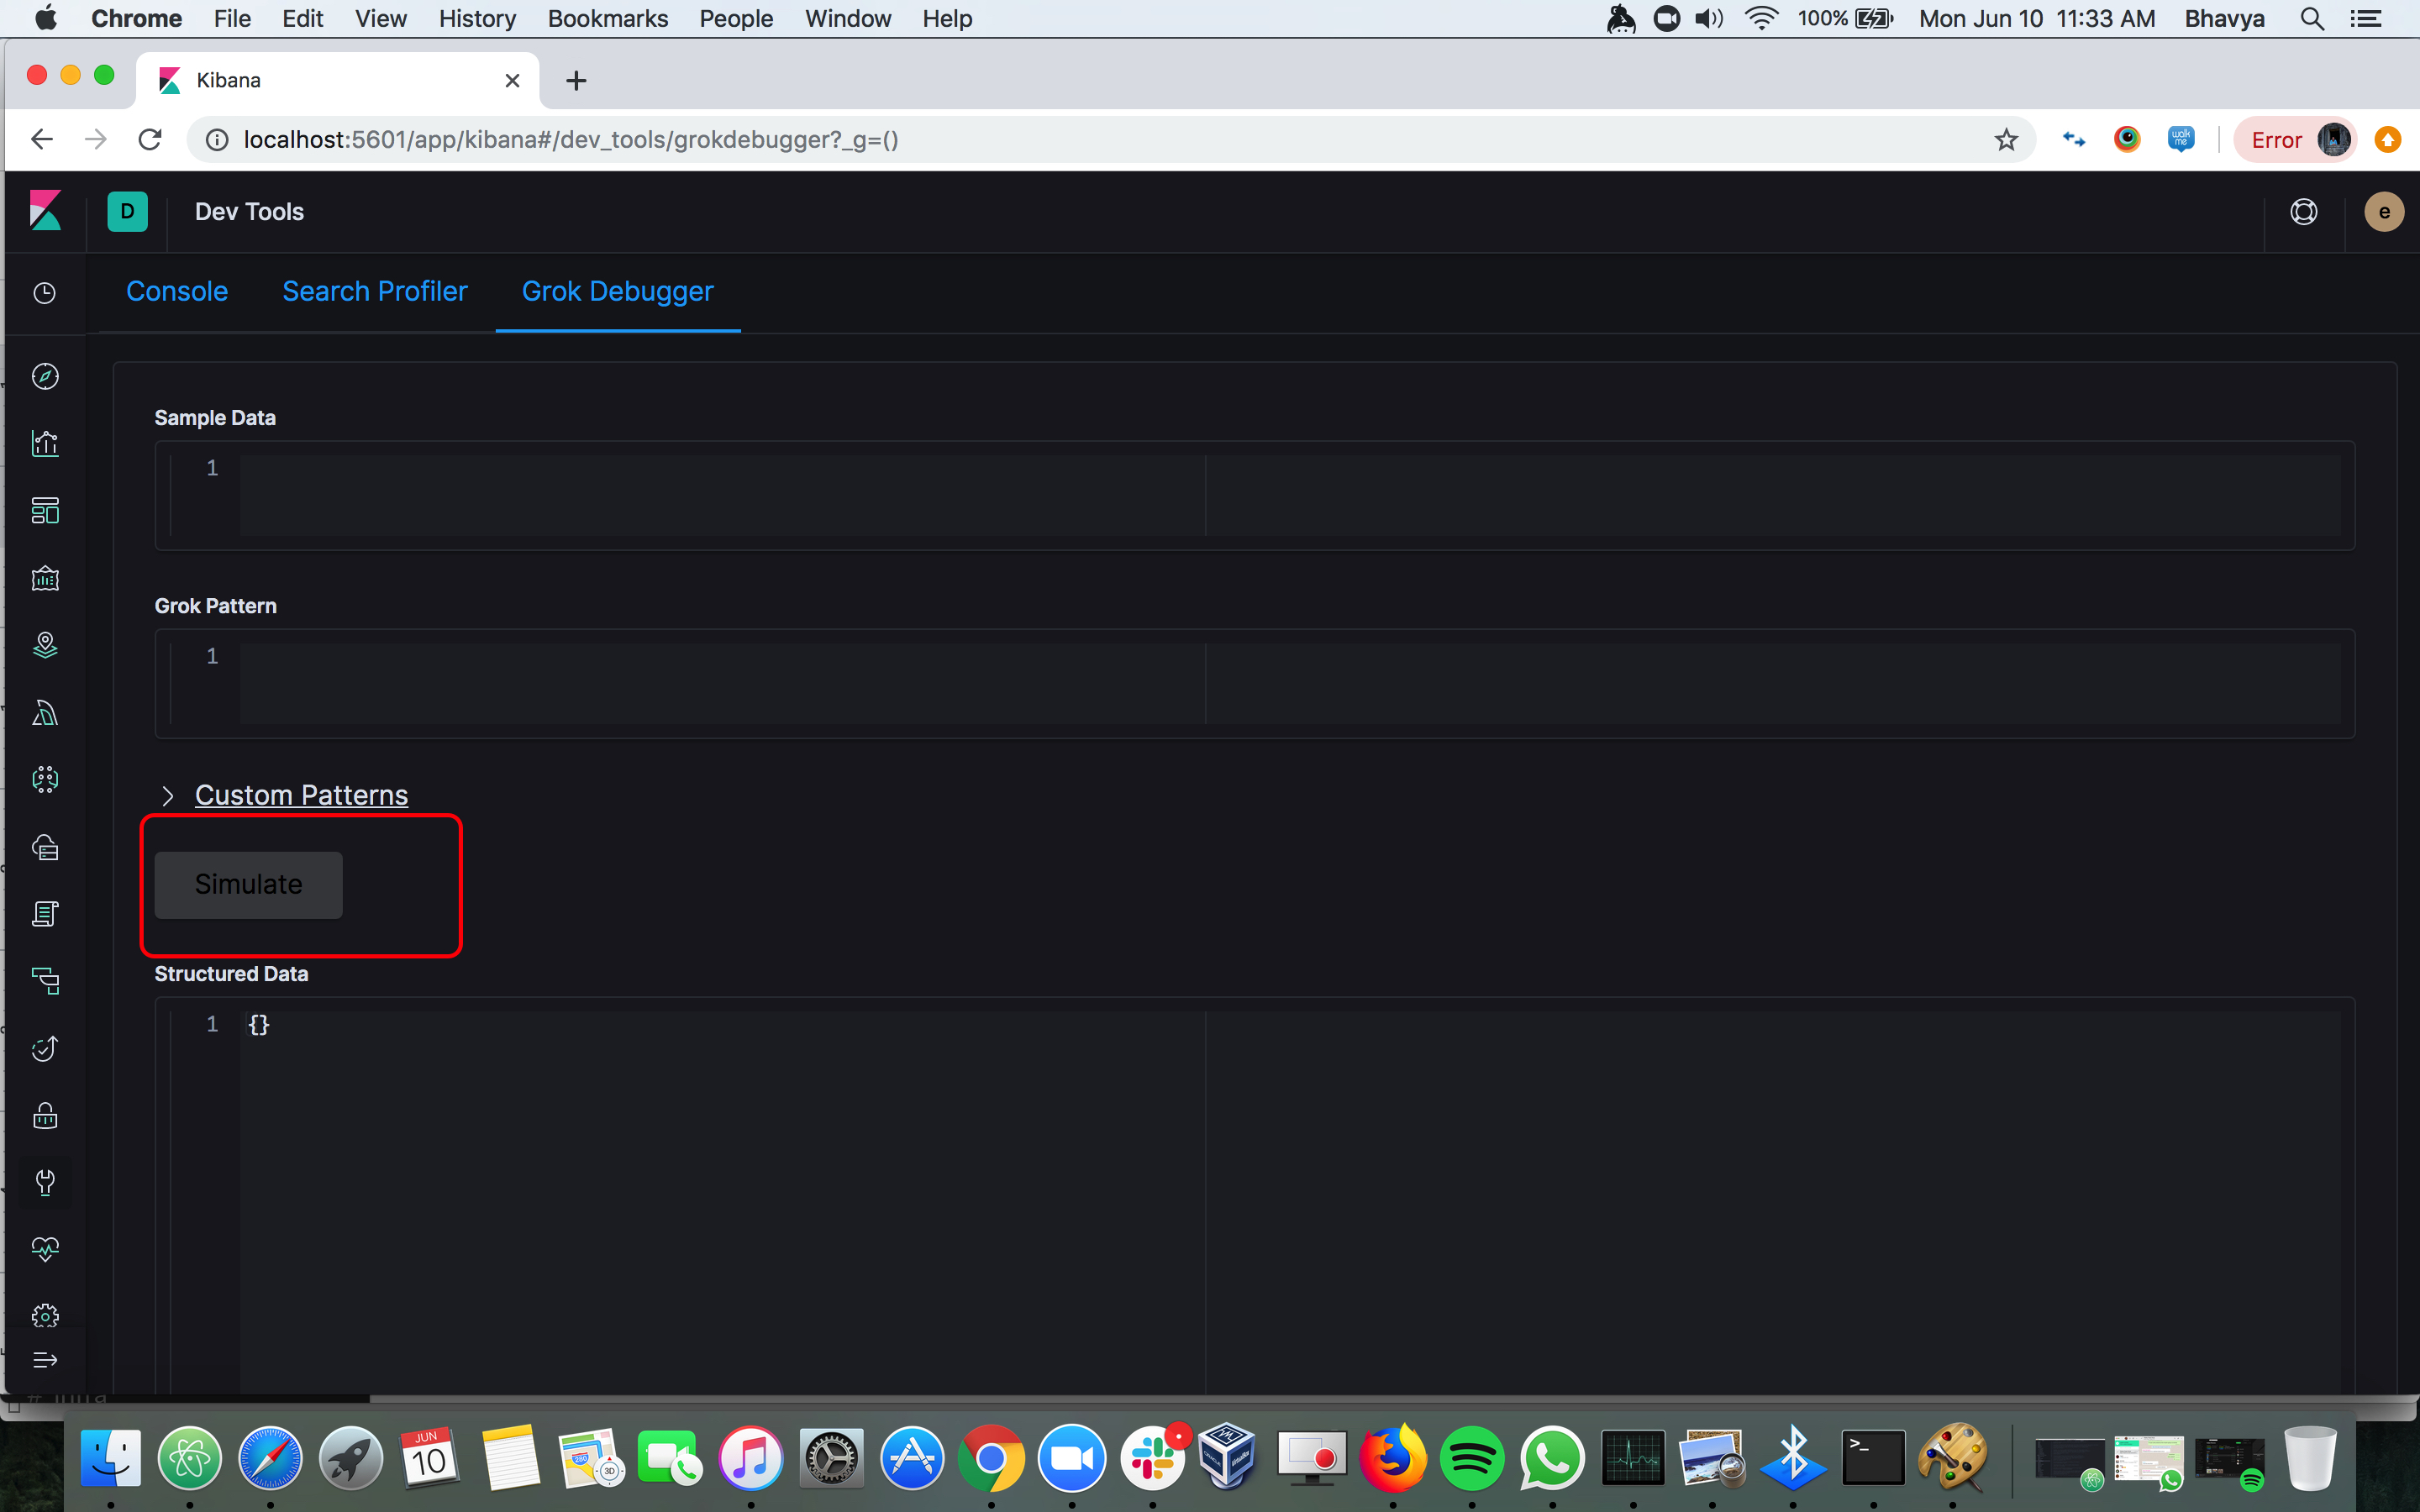 Simulate button on grok debugger is not visible in dark mode